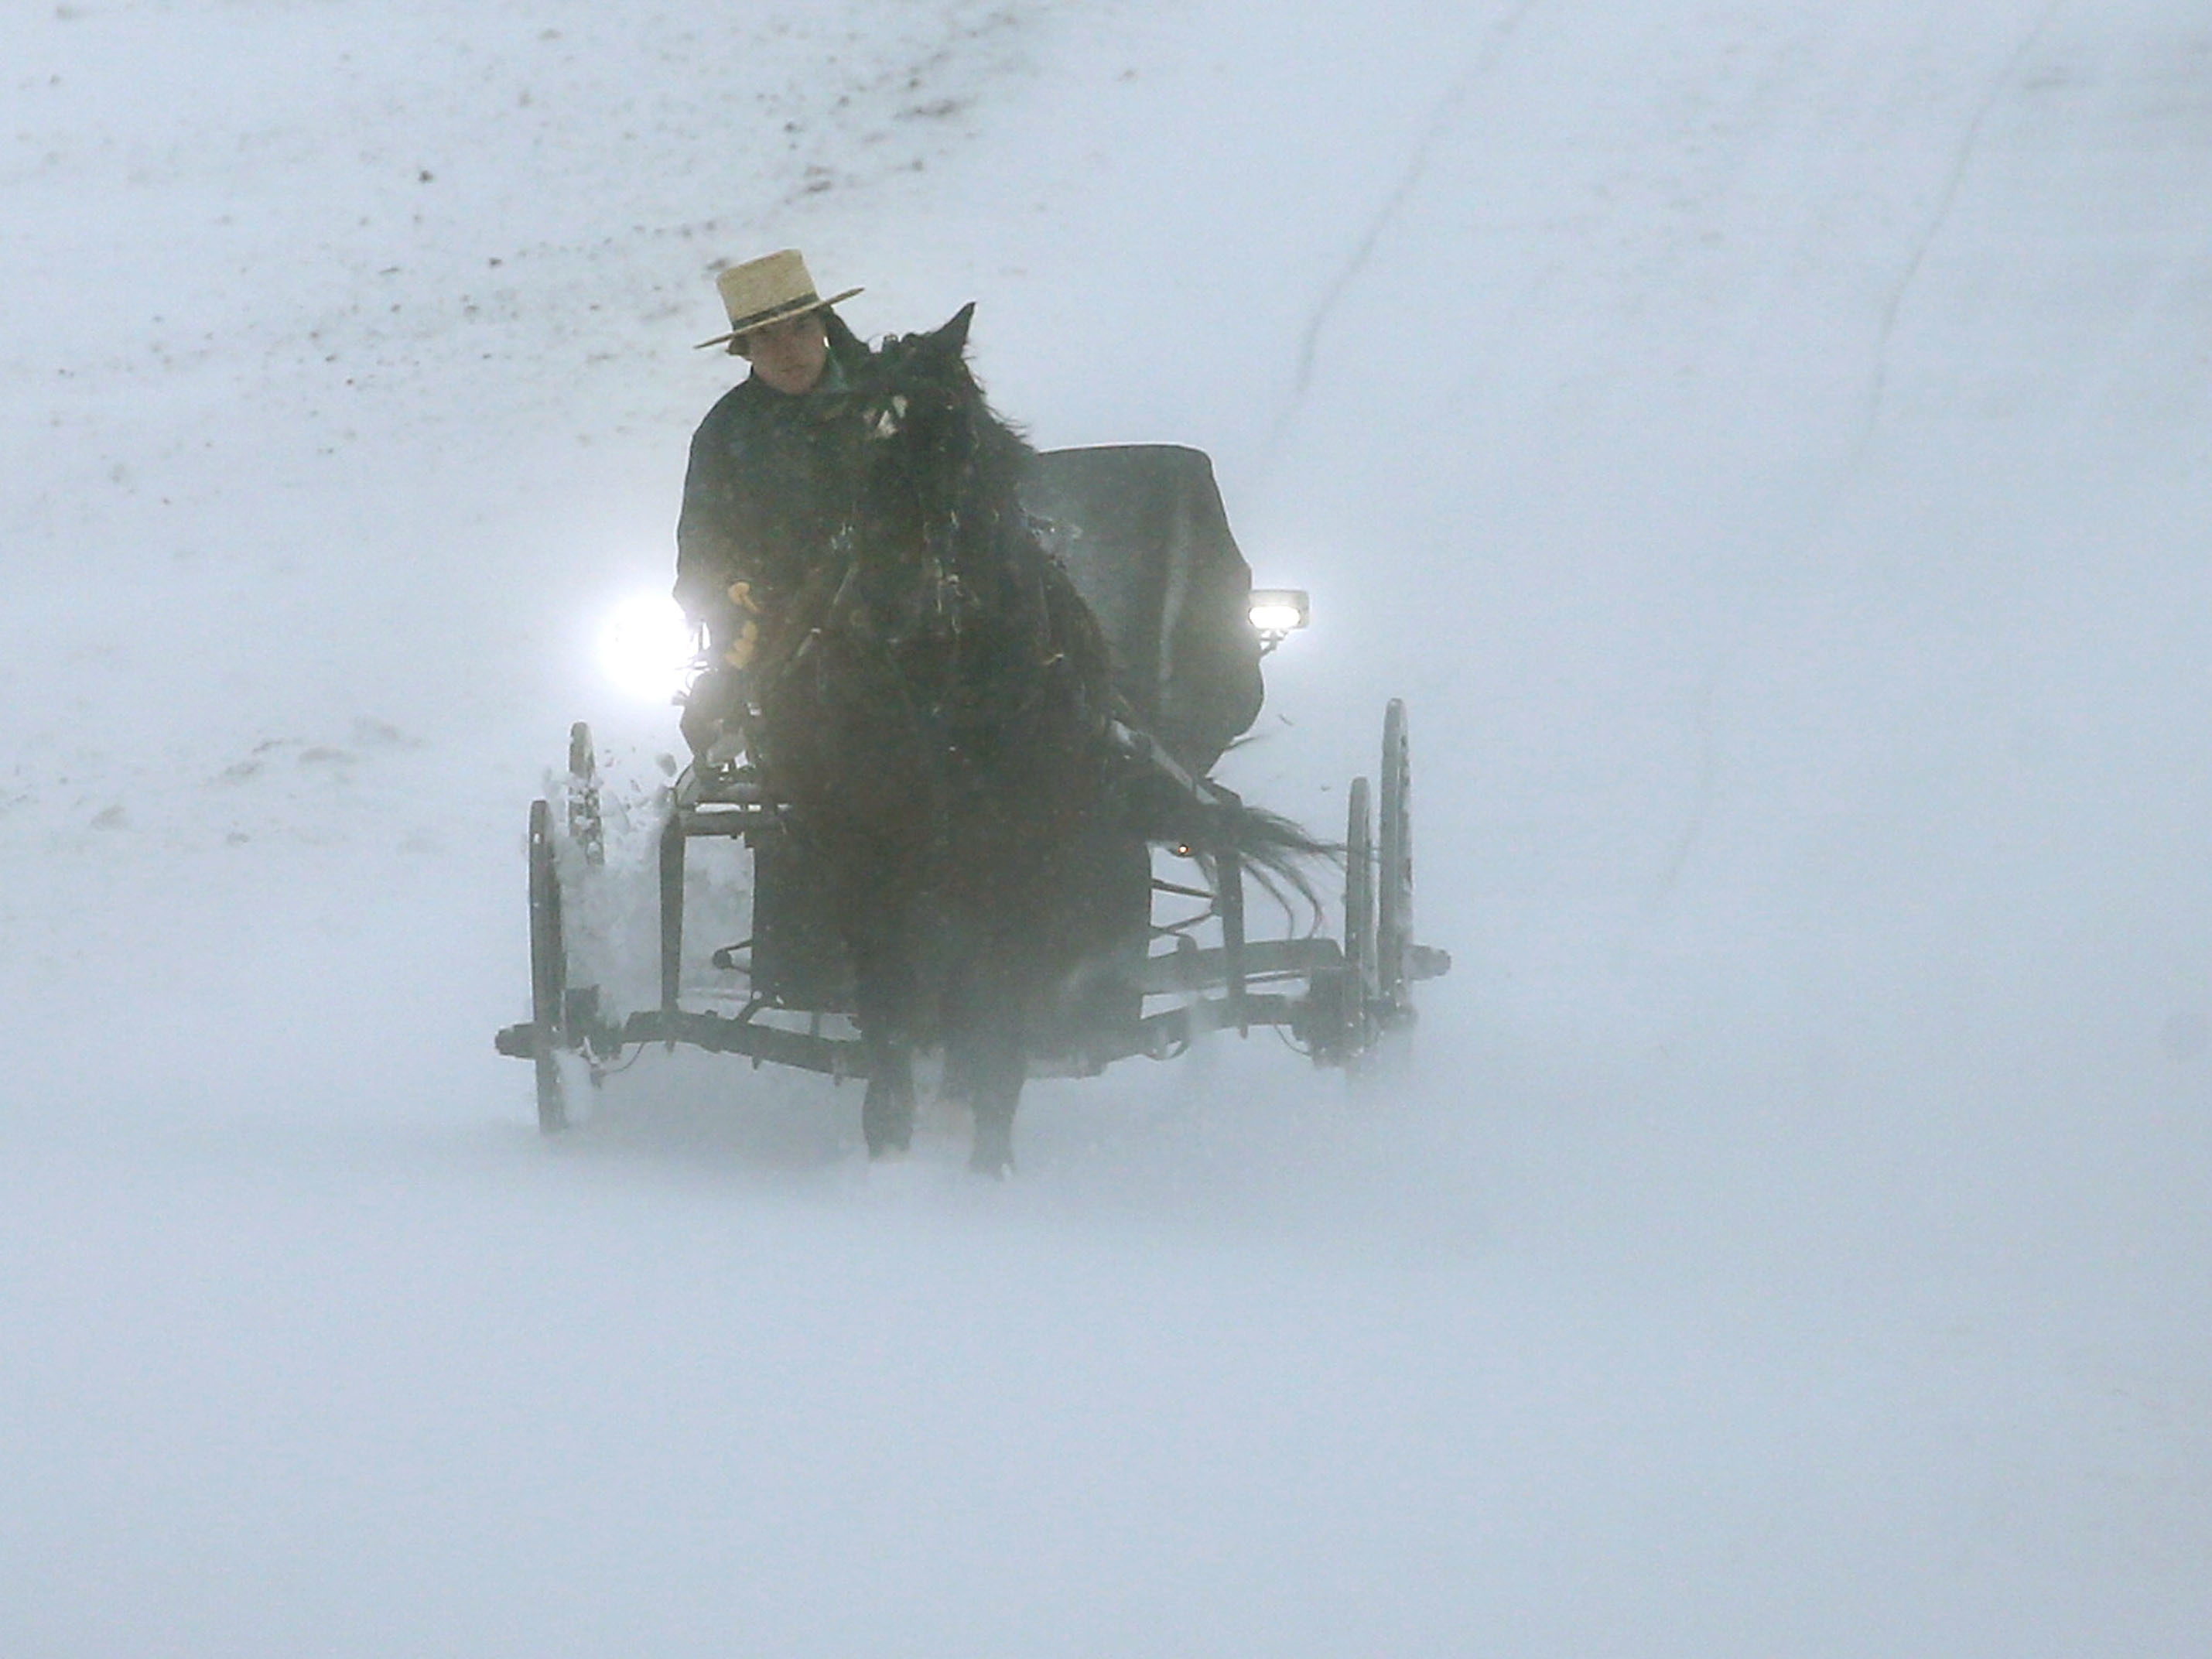 An Amish man drives his buggy through heavy snow and wind on Monday in Mechanicsville, Md. (Mark Wilson/Getty Images)